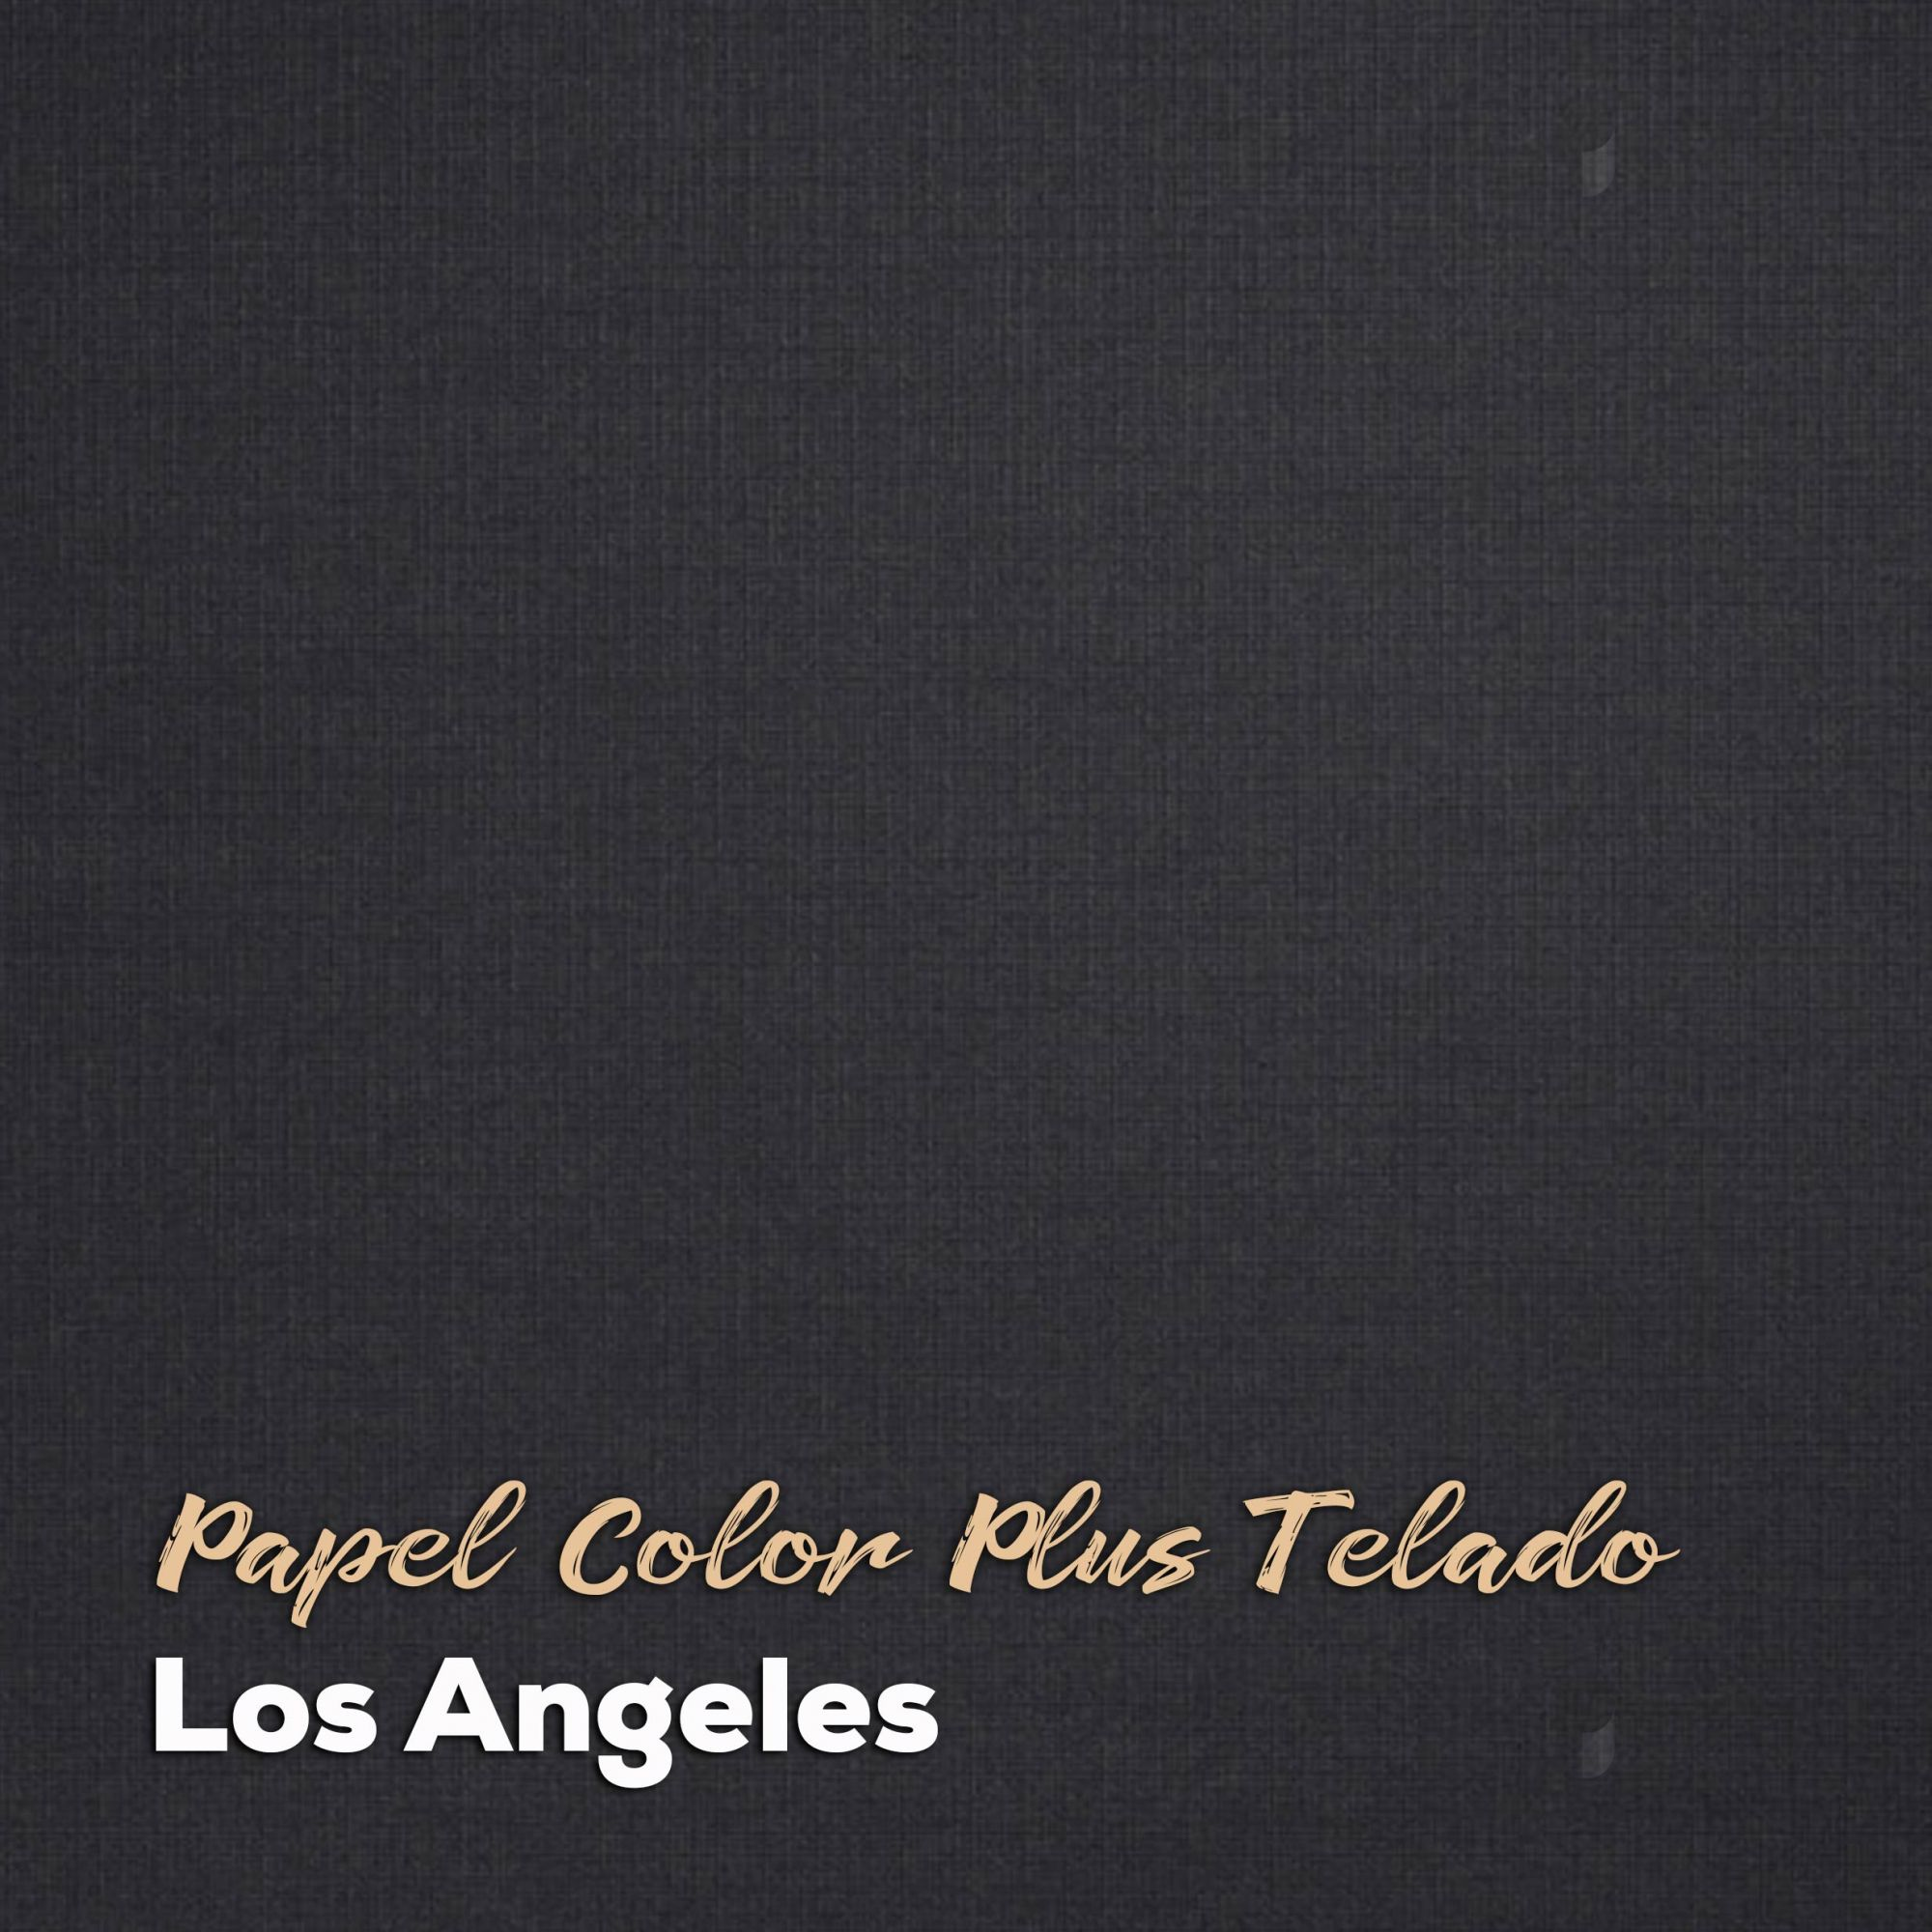 Papel Color Plus Los Angeles Telado - Tam. A3 180g/m² - 20 Folhas